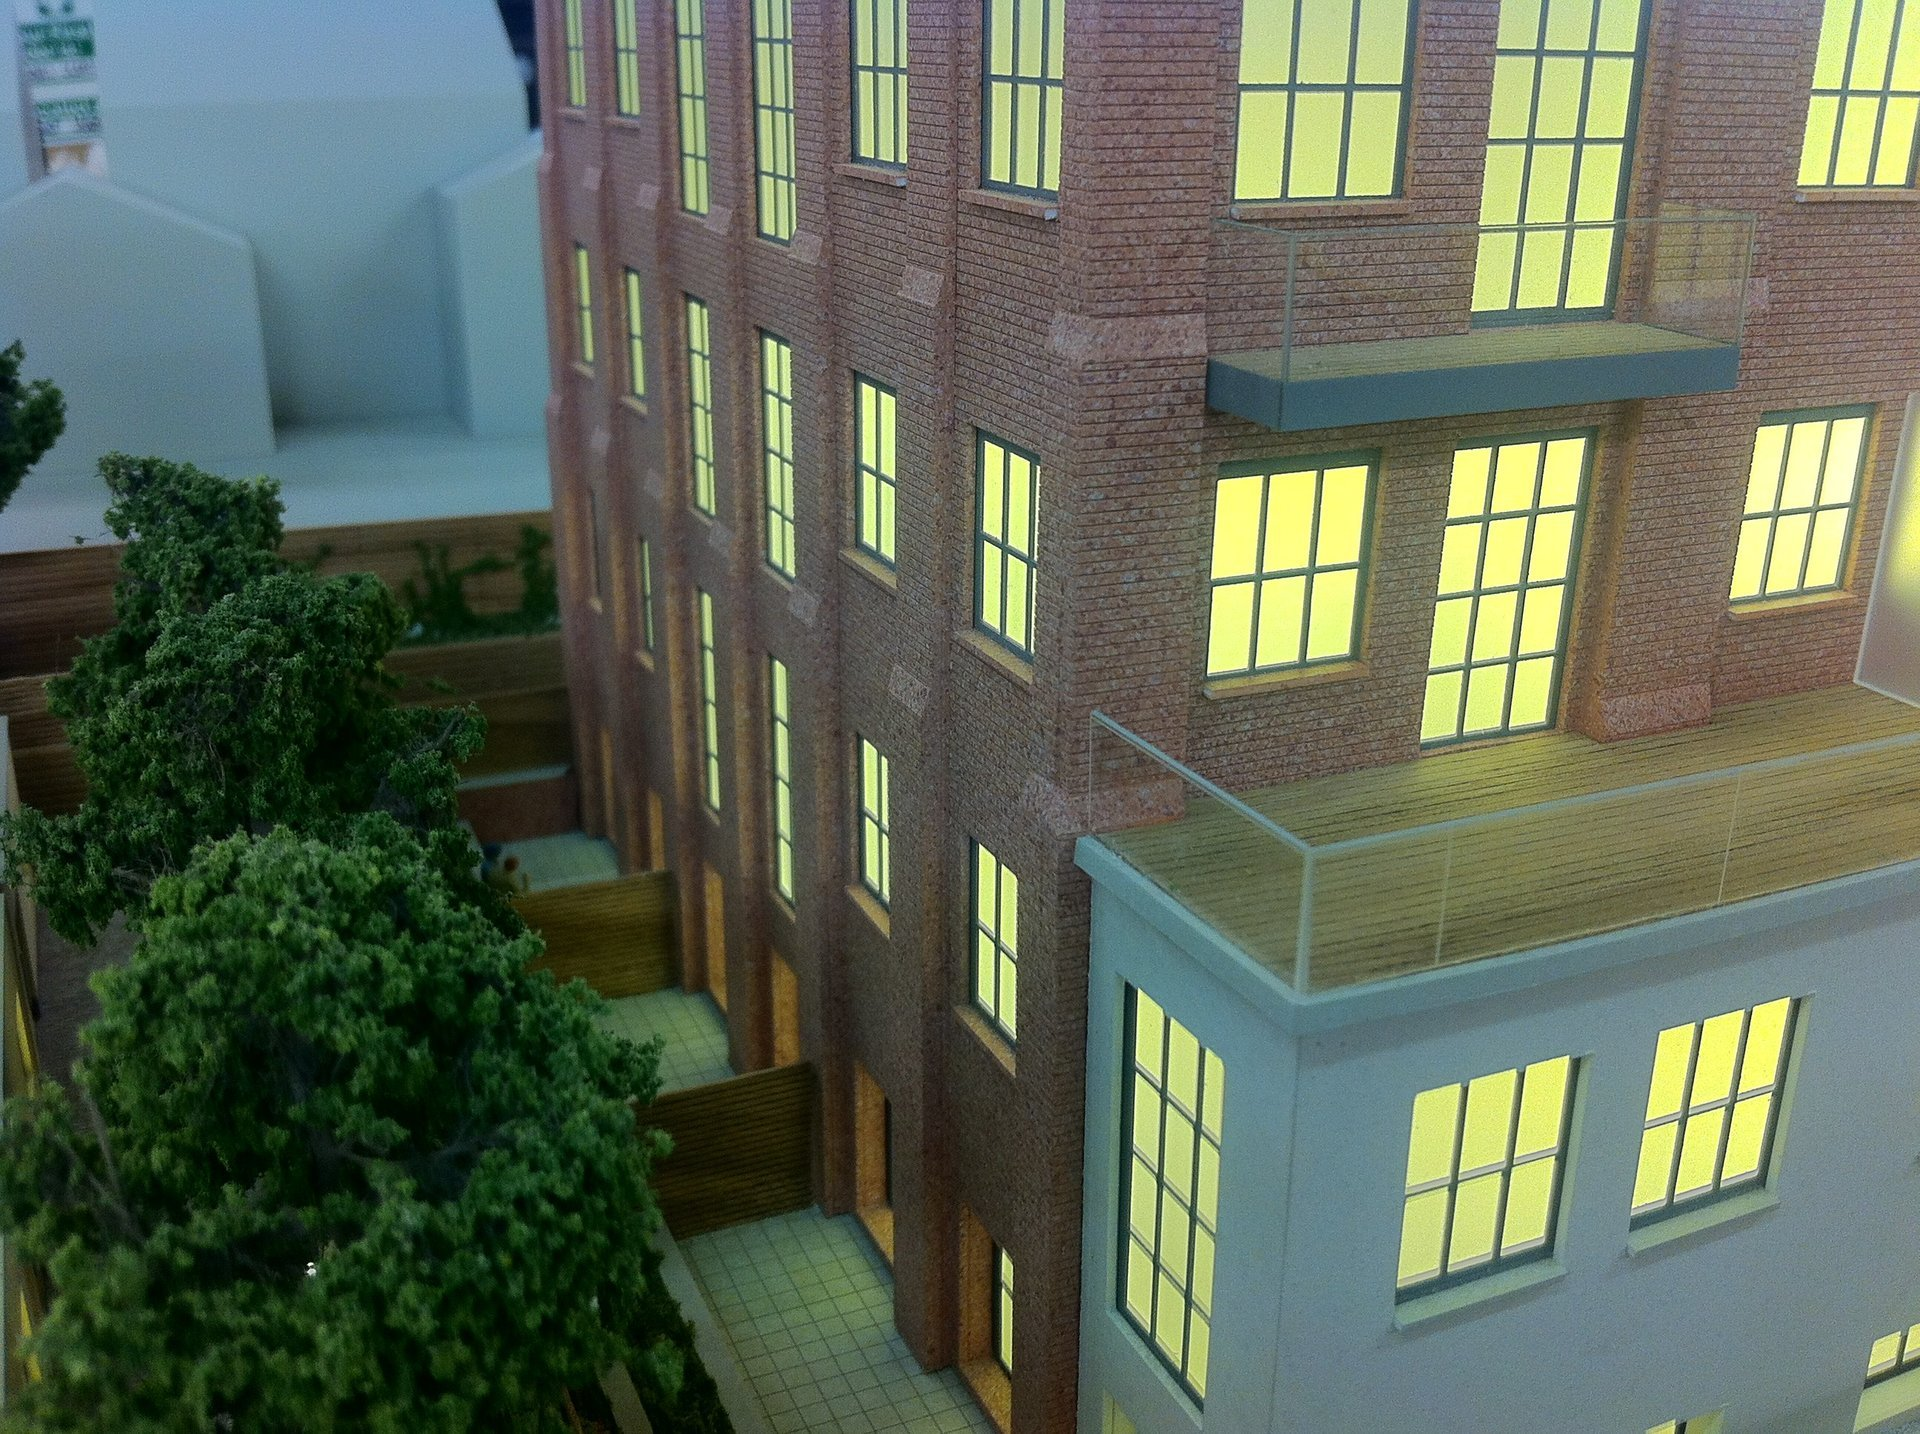 Architectural Model LED lighting close up